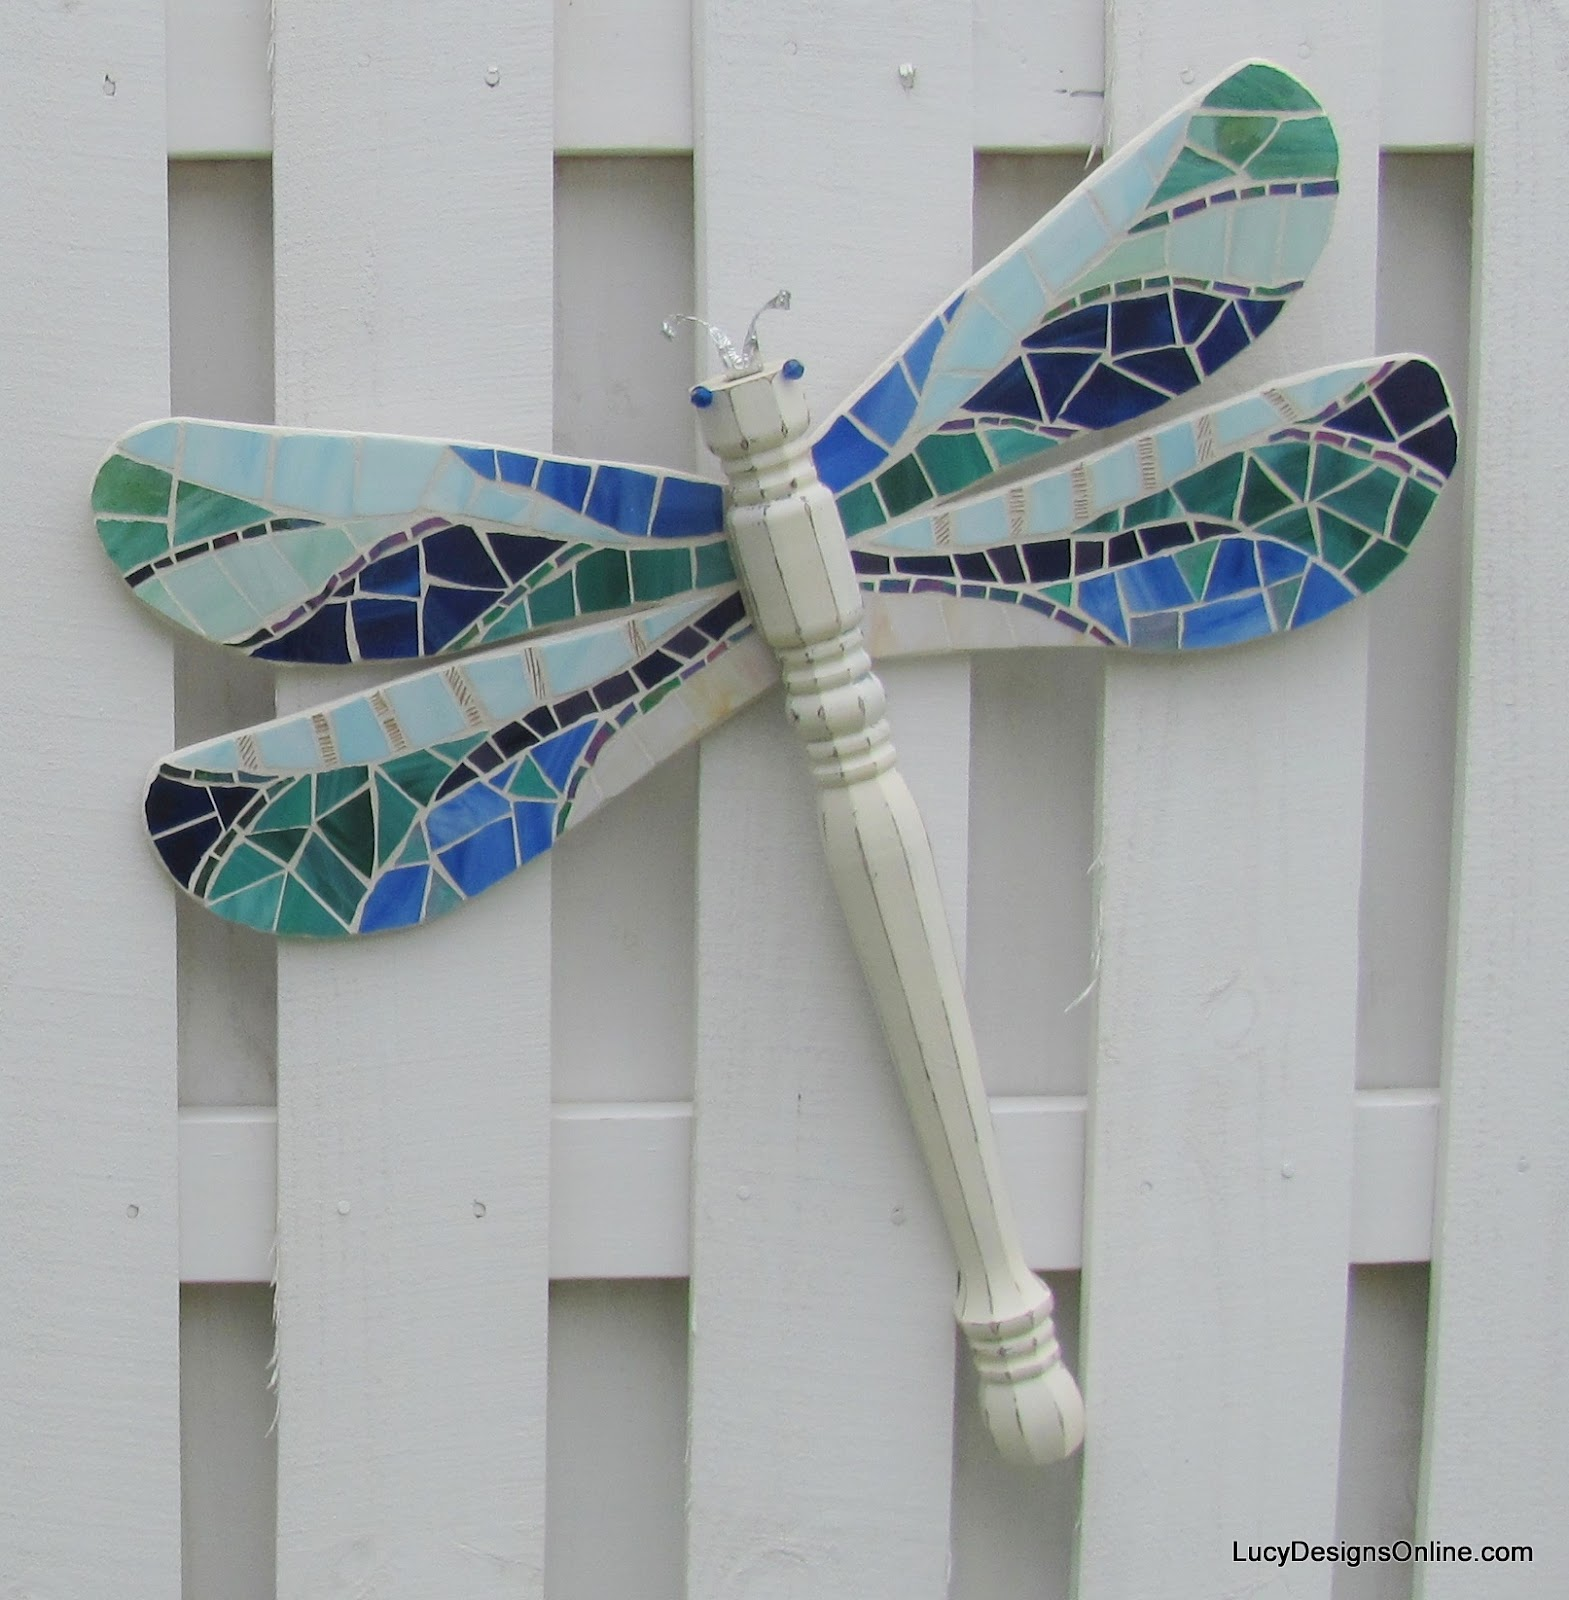 Table Leg Dragonflies with Stained Glass Mosaic Wings ...